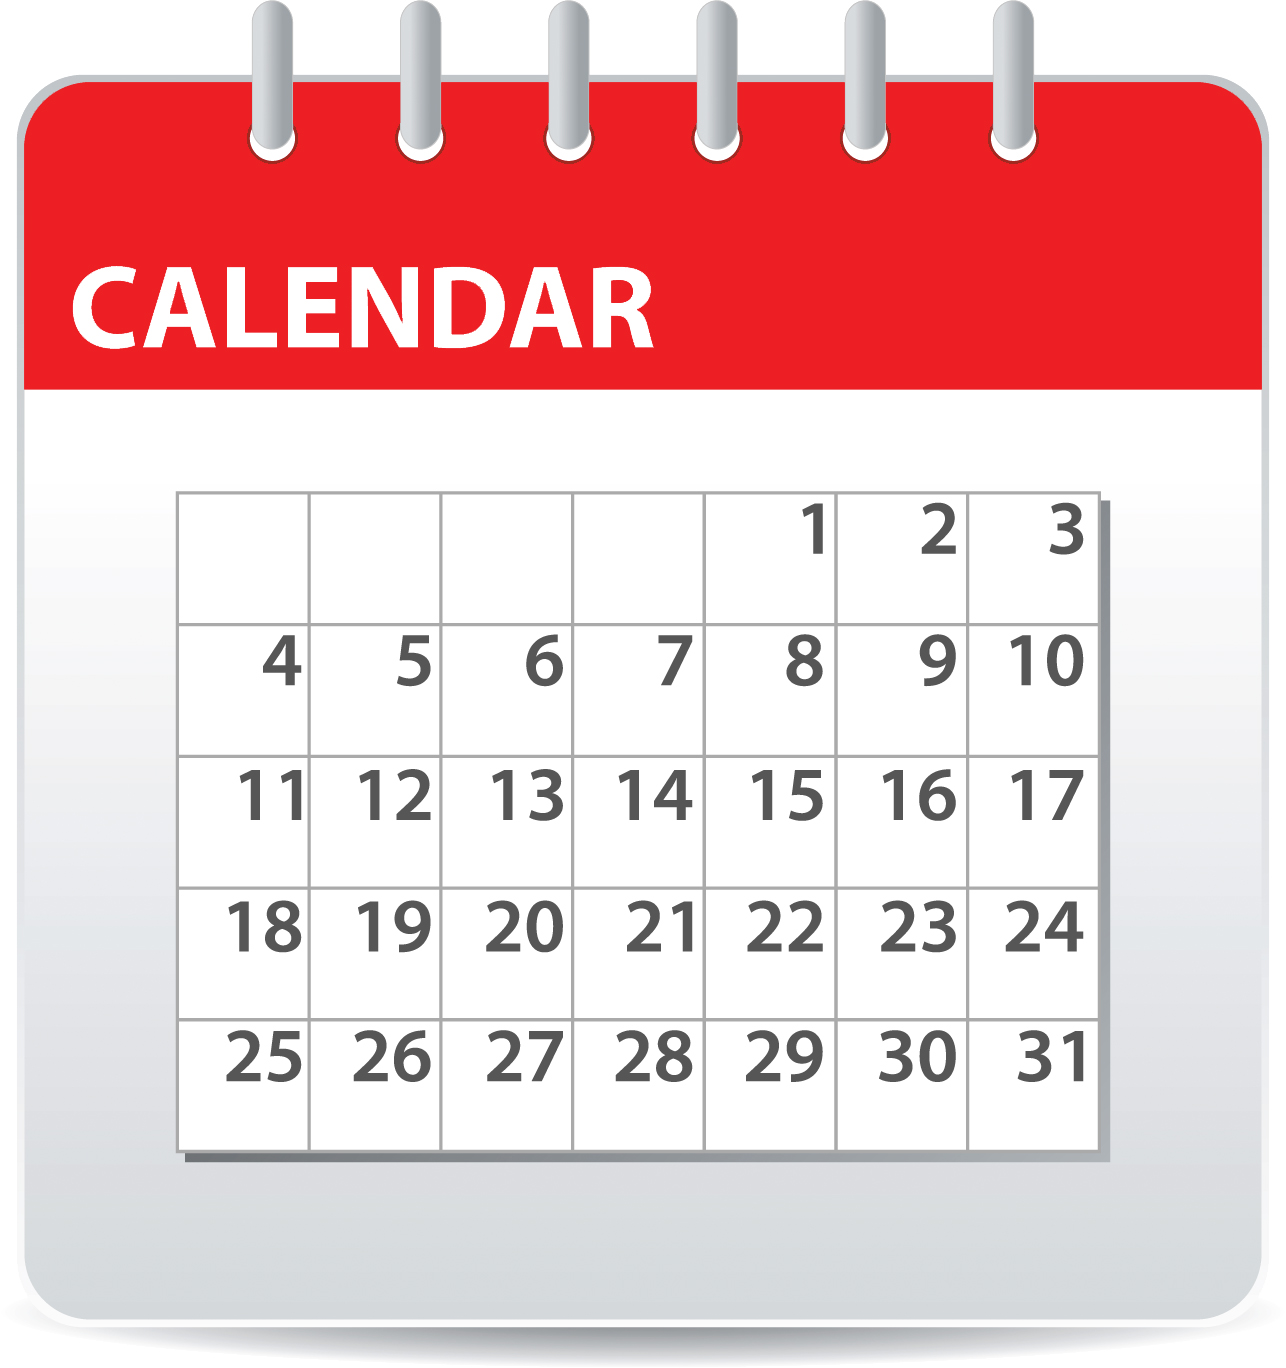 Click to view dates...